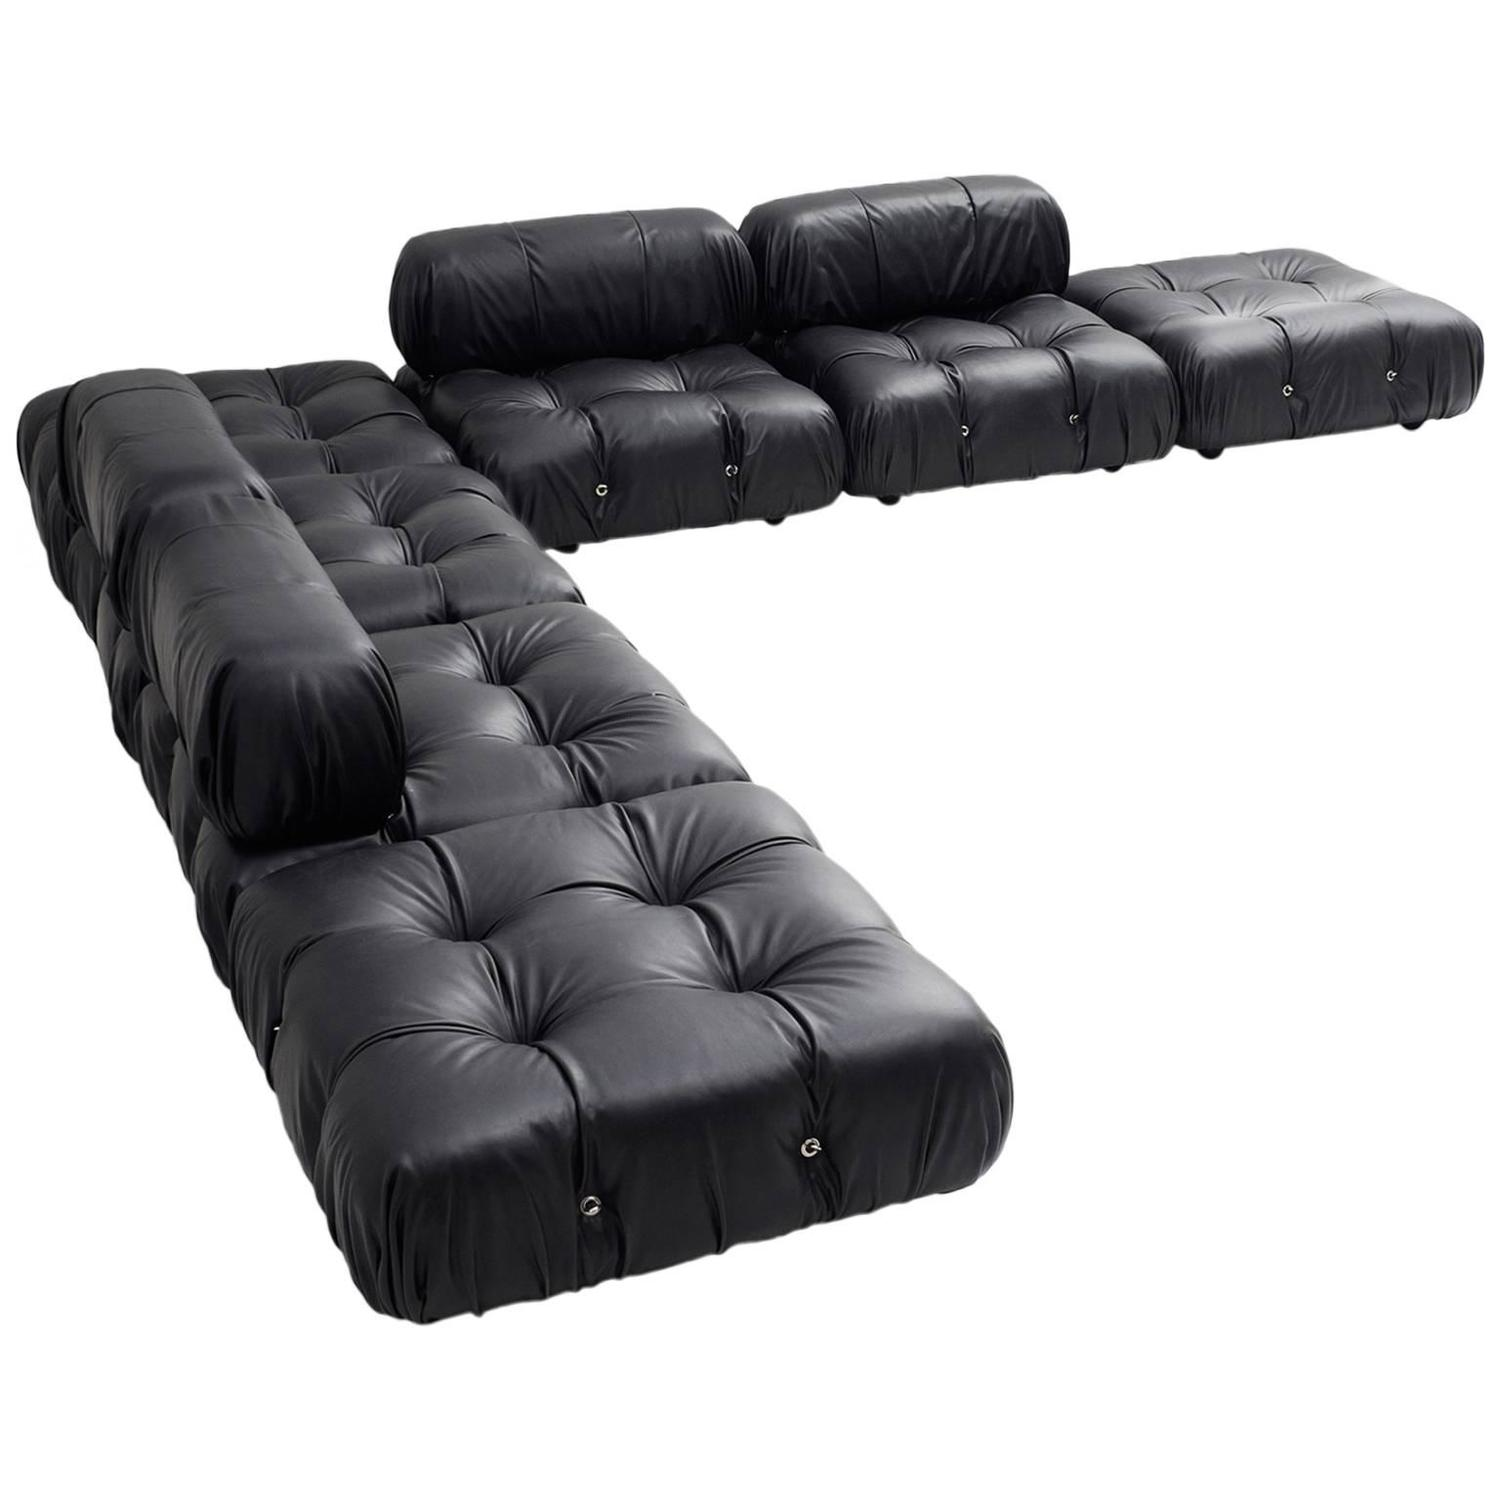 mario bellini modular sofa 39 camaleonda 39 at 1stdibs. Black Bedroom Furniture Sets. Home Design Ideas